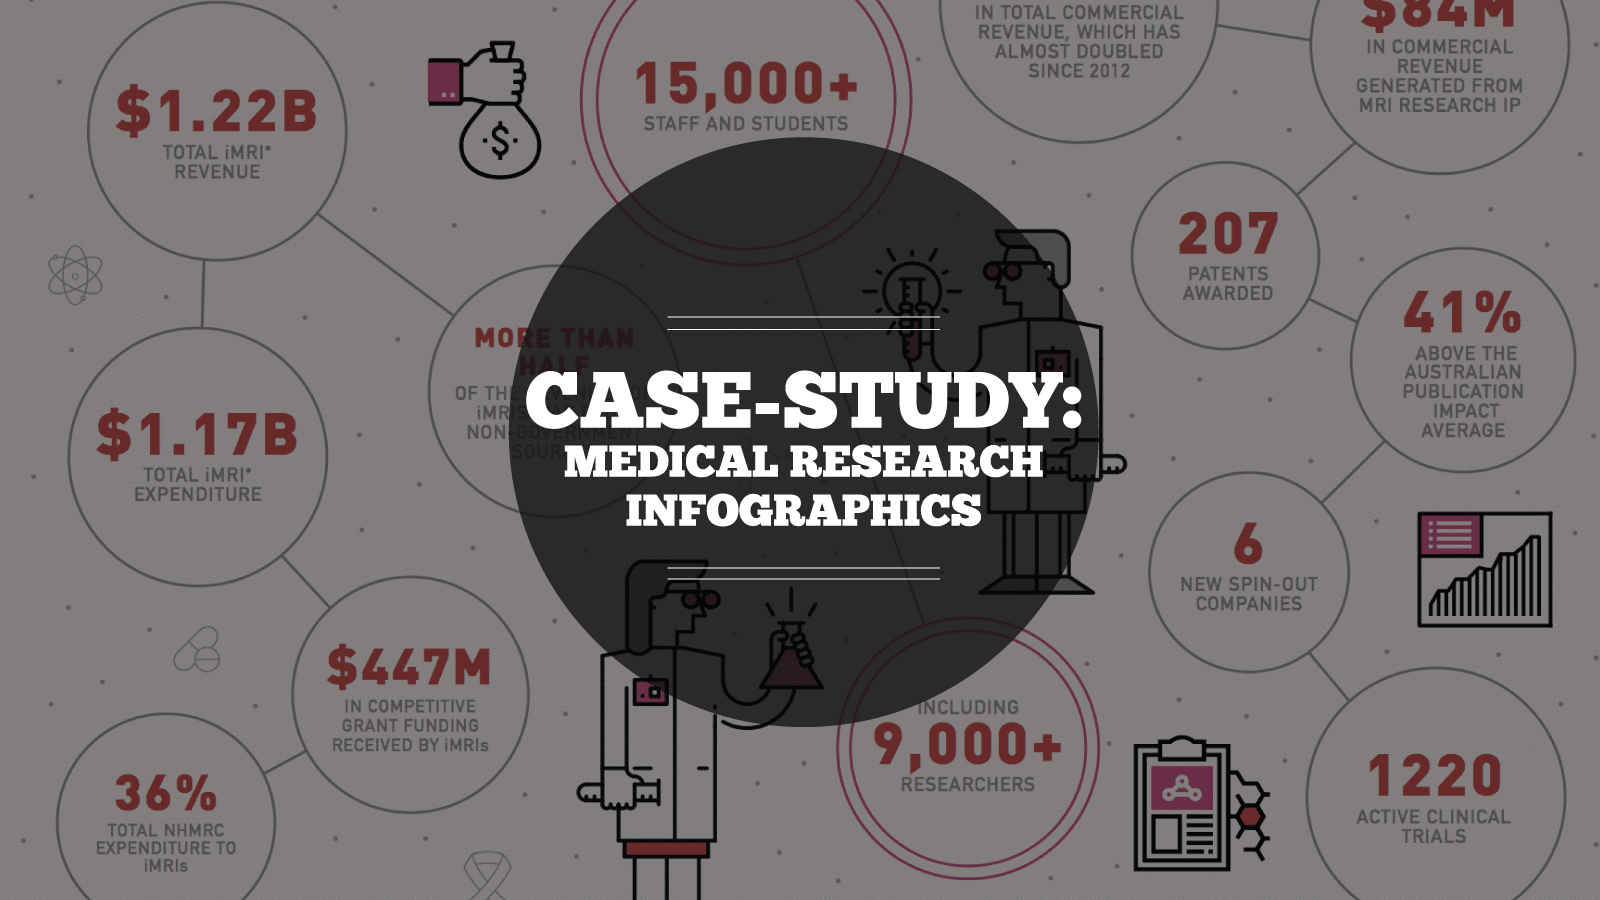 Case-study: Medical Research Infographic